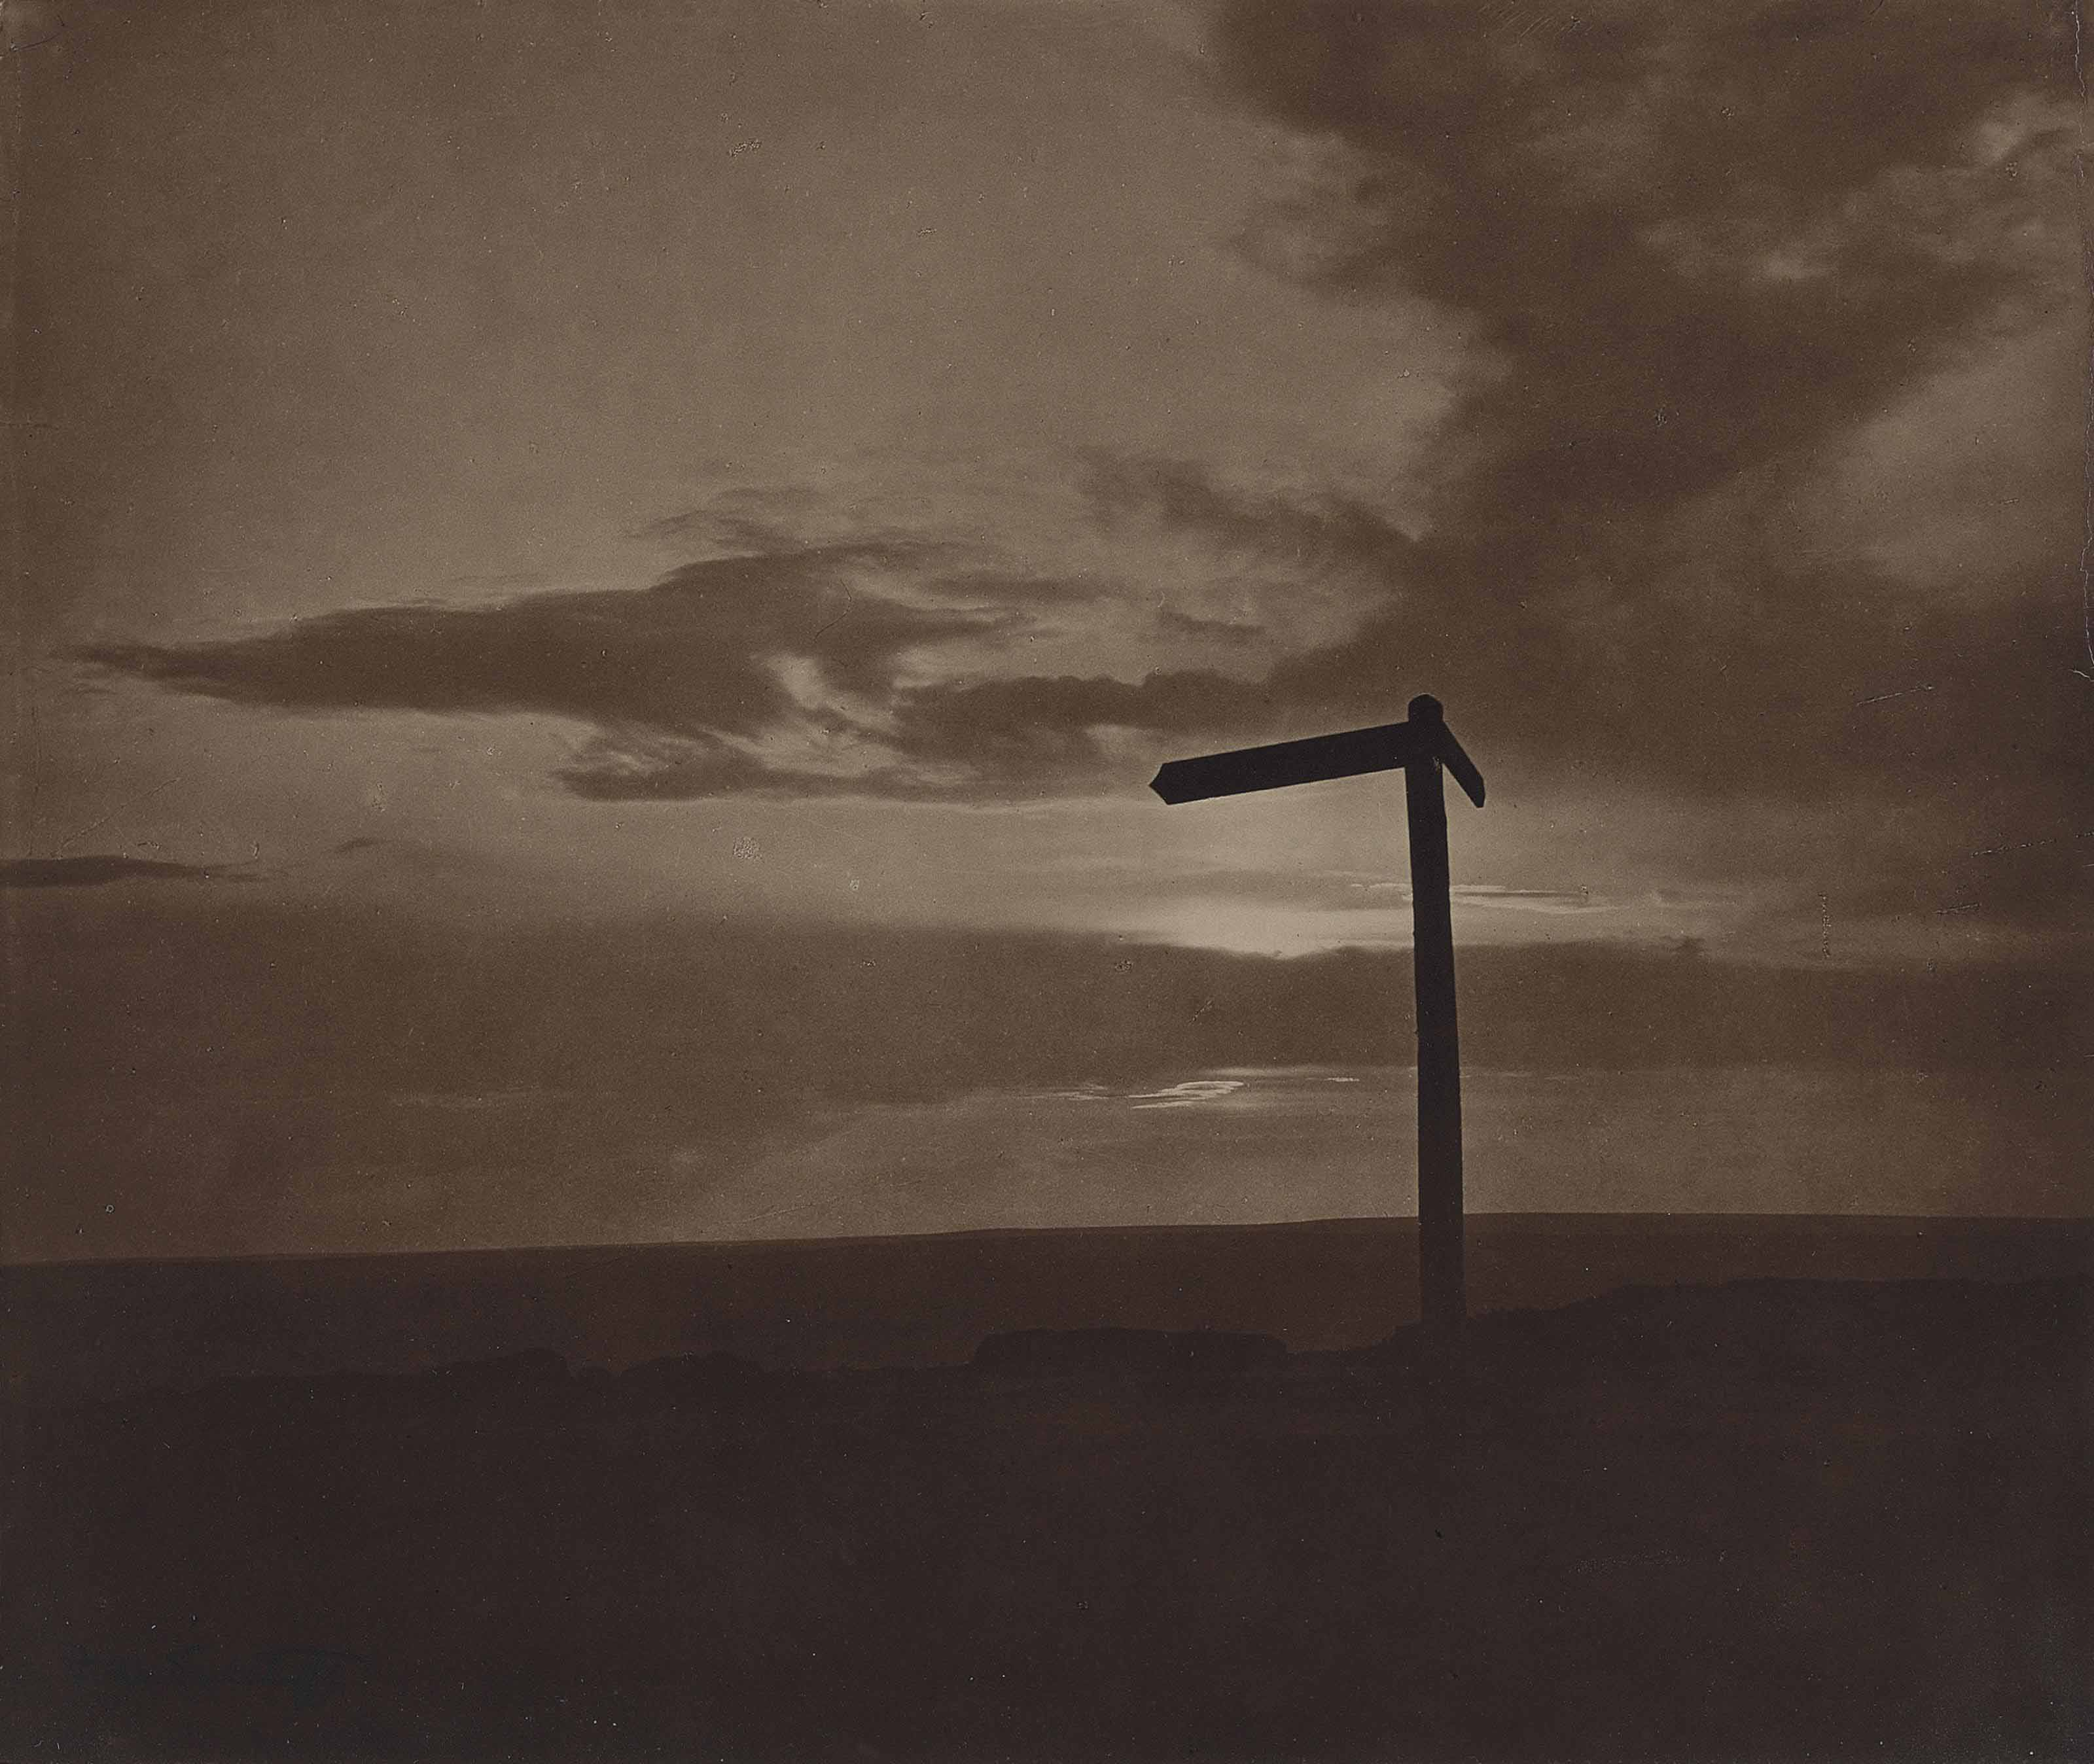 Untitled (Signpost at sunset), c. 1890